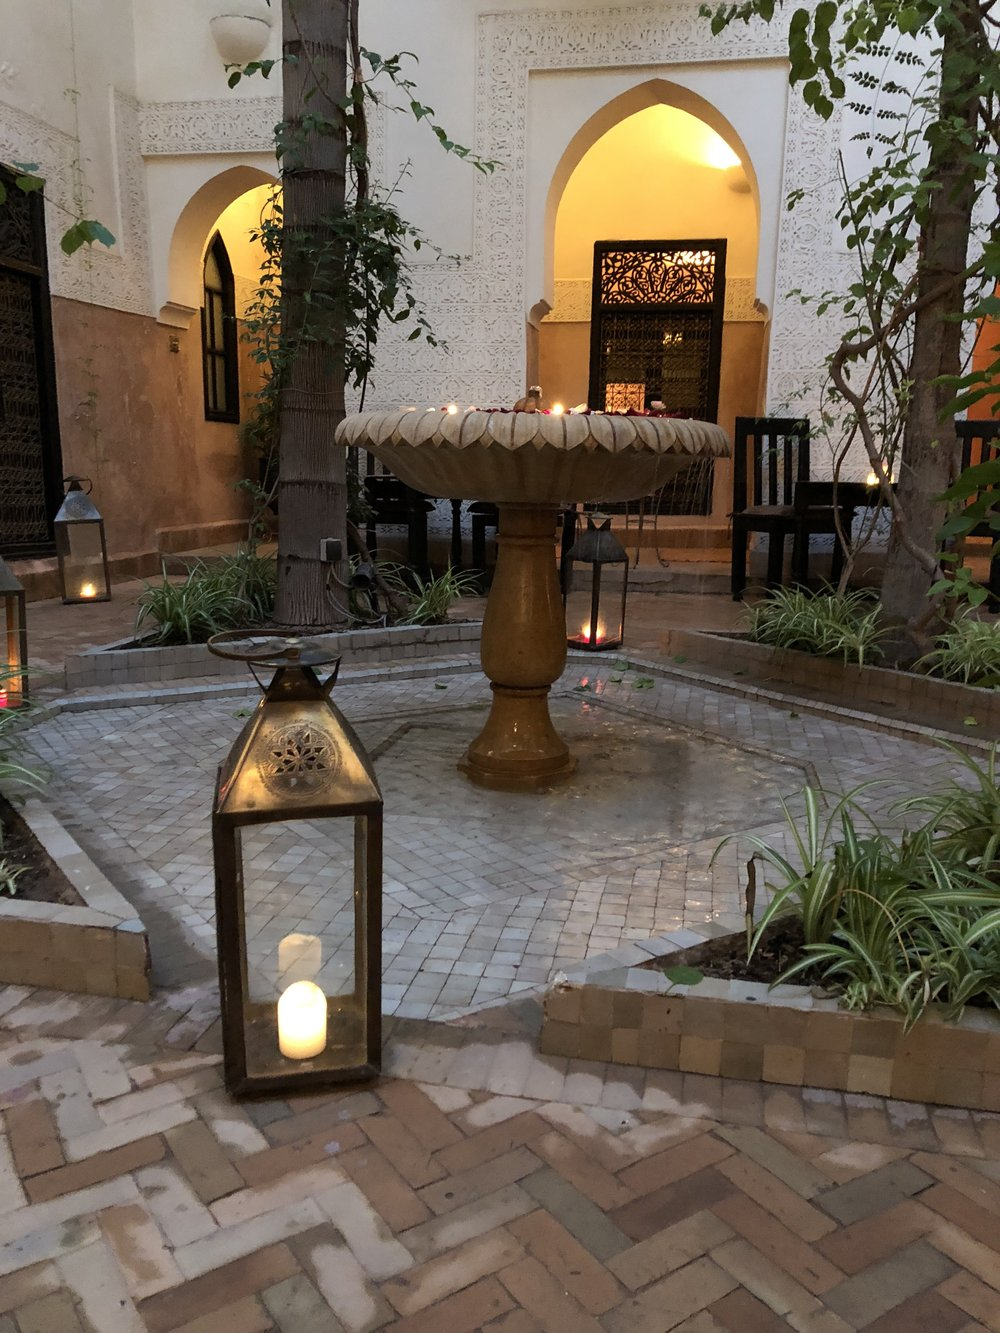 The courtyard at the center of our riad, home for the next three nights.